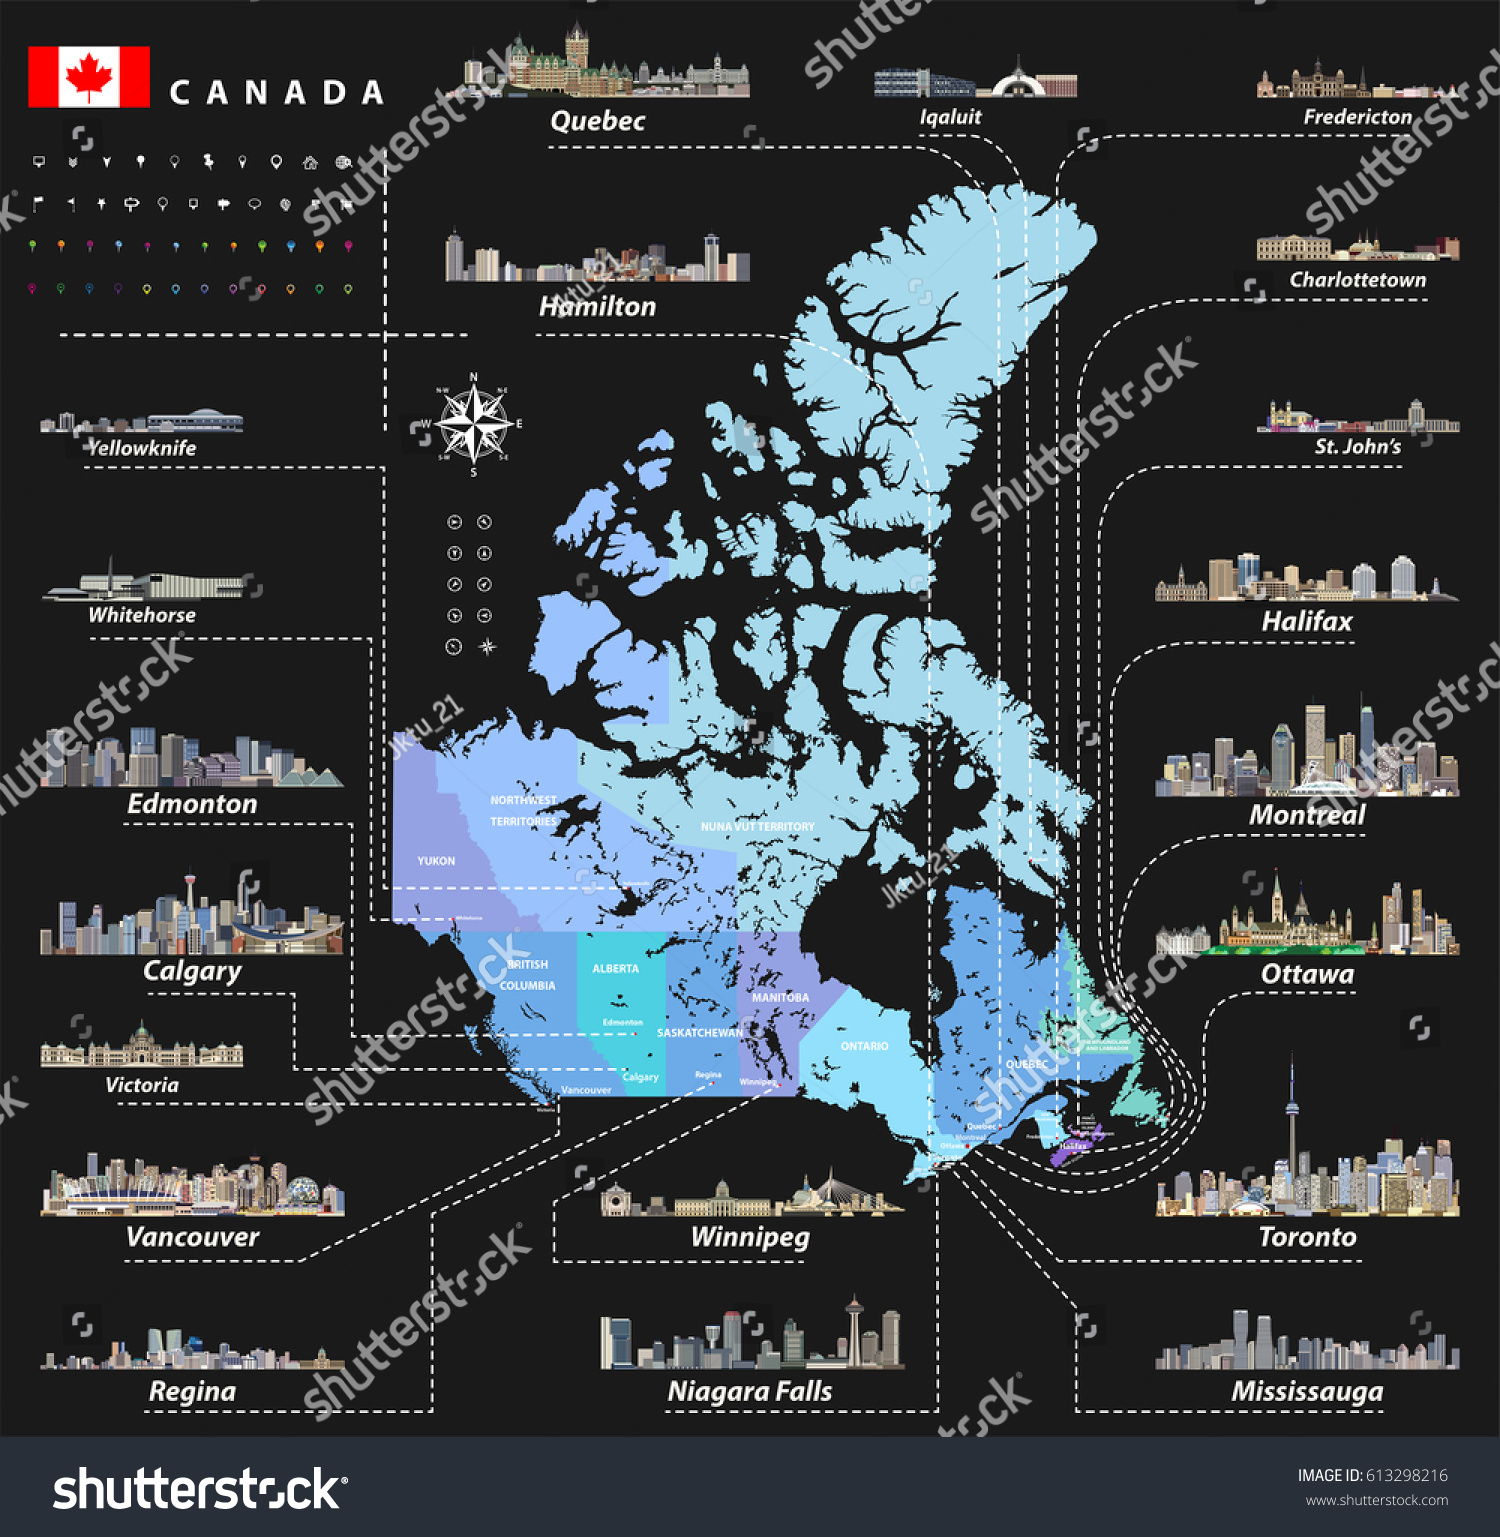 Map Provinces Territories Canada Largest Cities Stock Vector - Canada states capital map